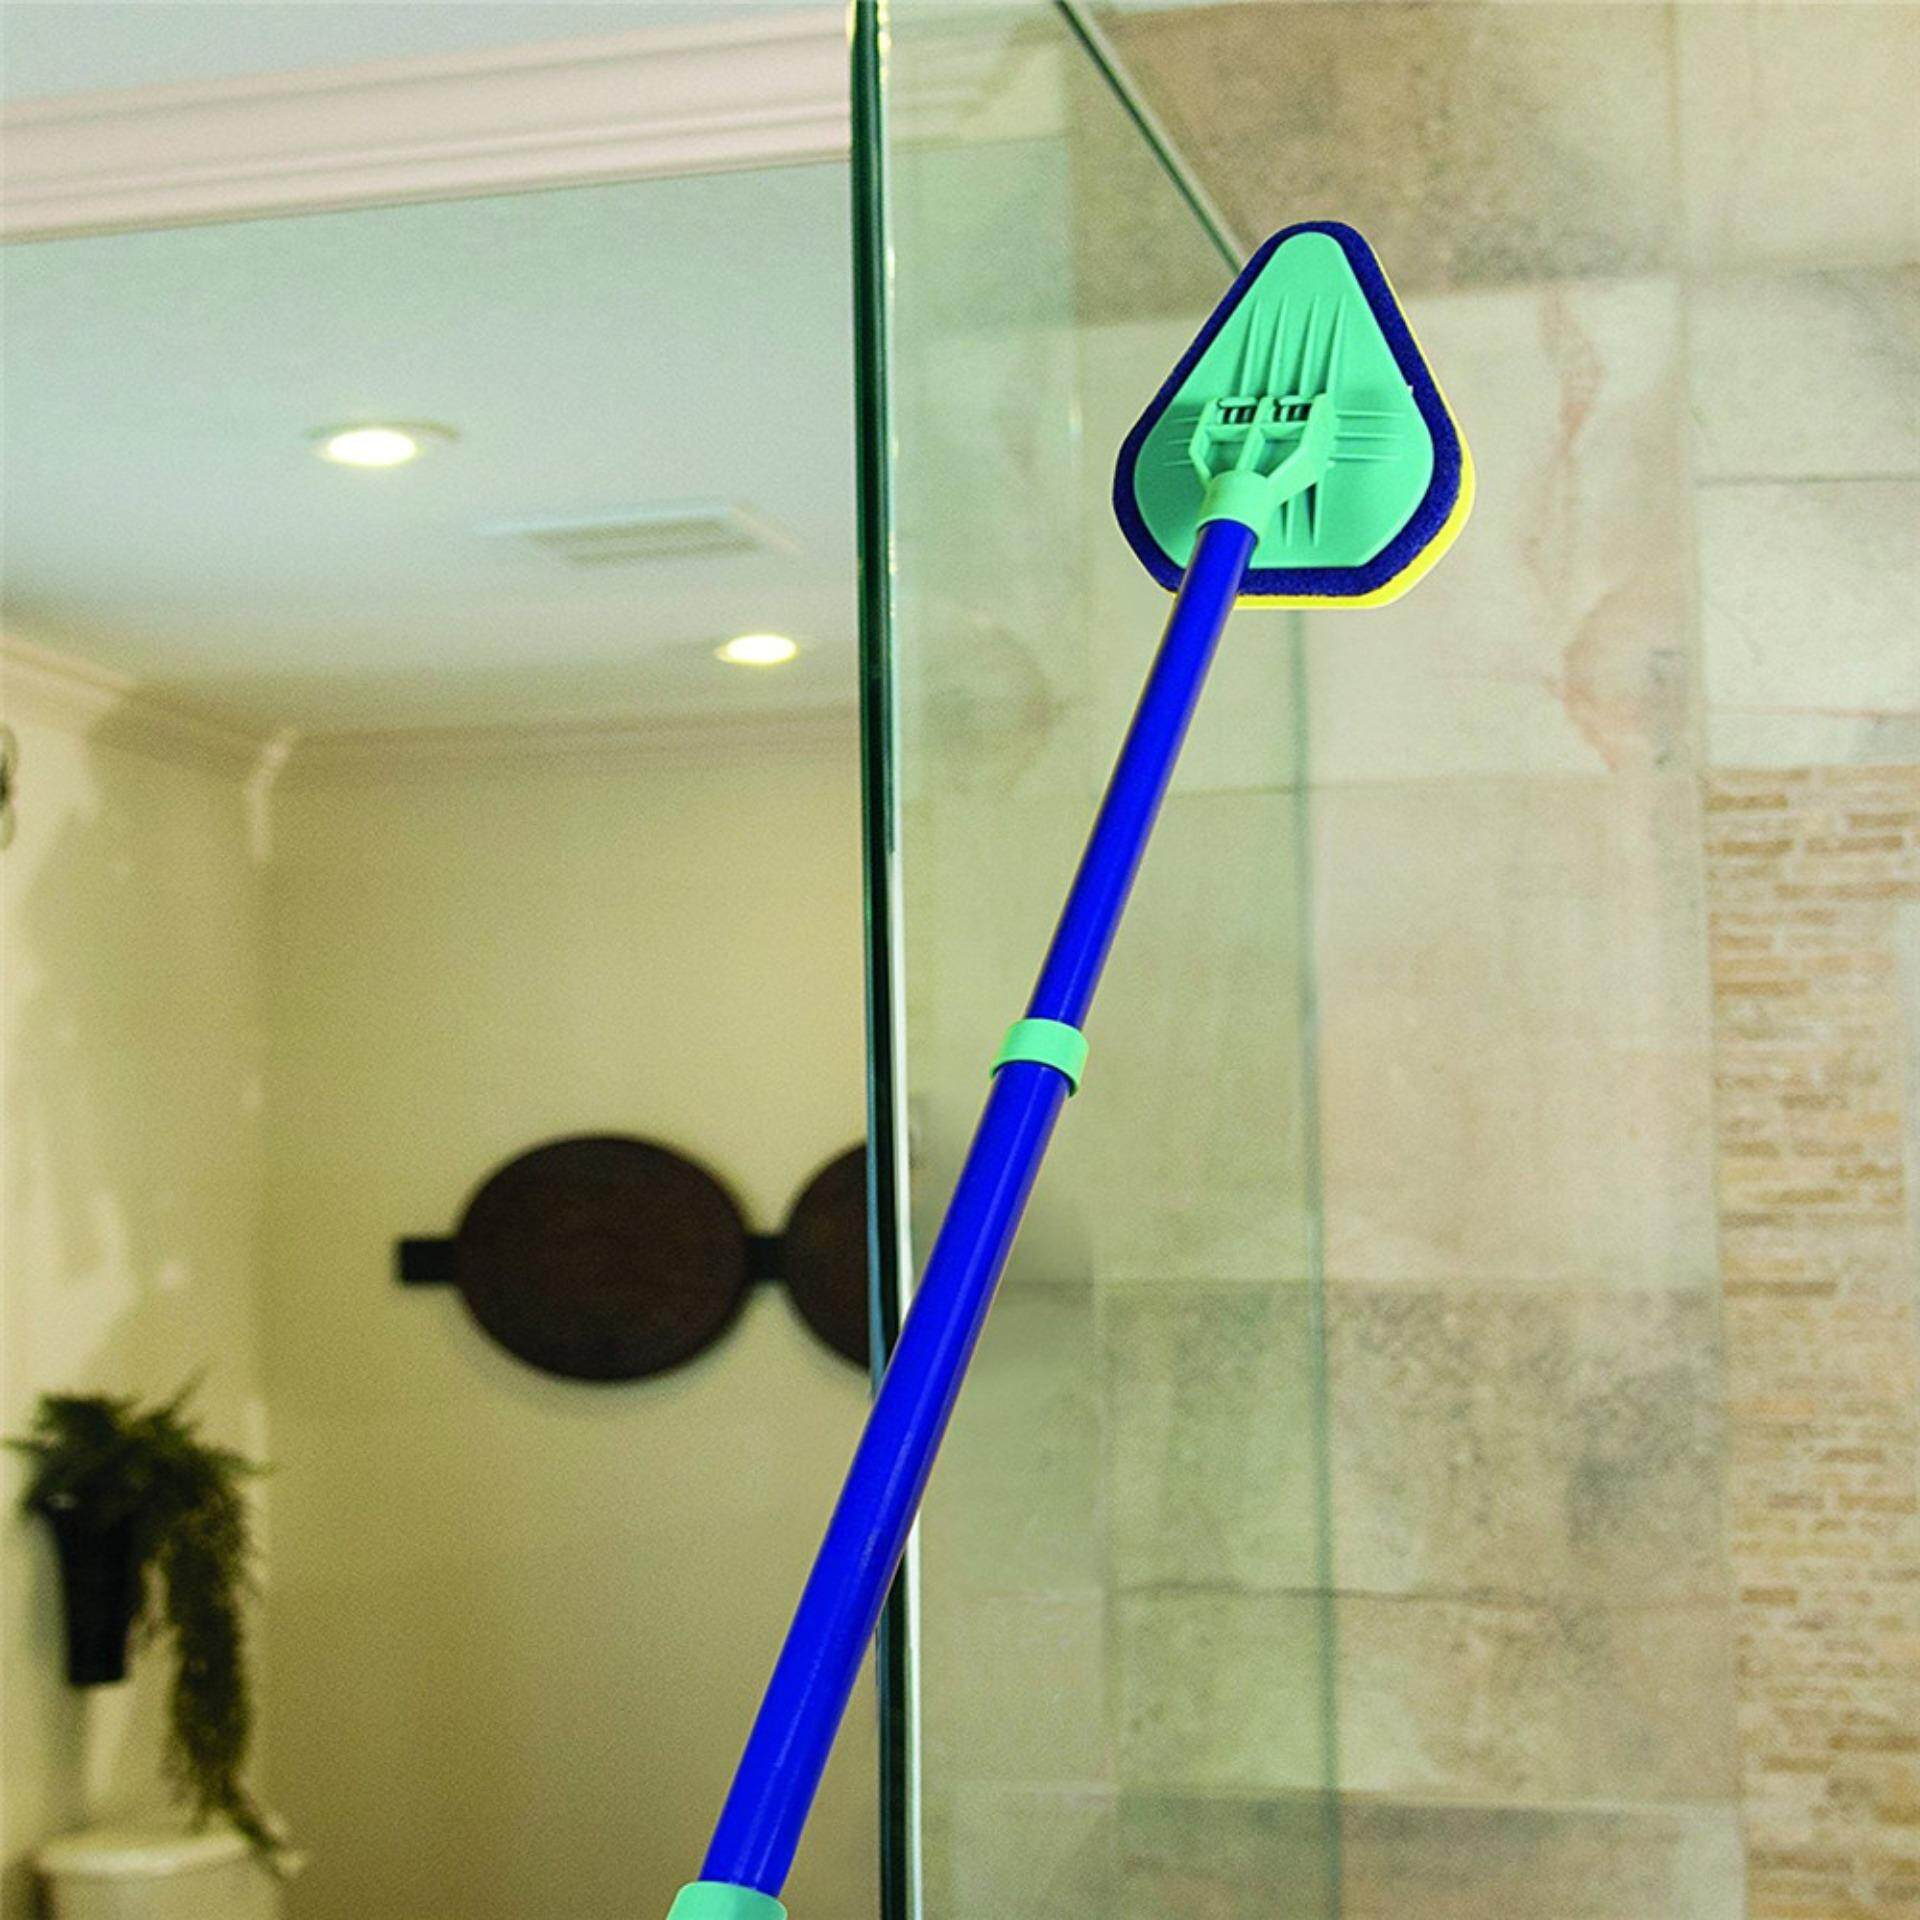 Hot Sale Clean Reach Deluxe Power Scrubber Bathtub Cleaner And Kitchen Brush With Handle 3in One Multifunctional Cleaner - Intl By Cessna.